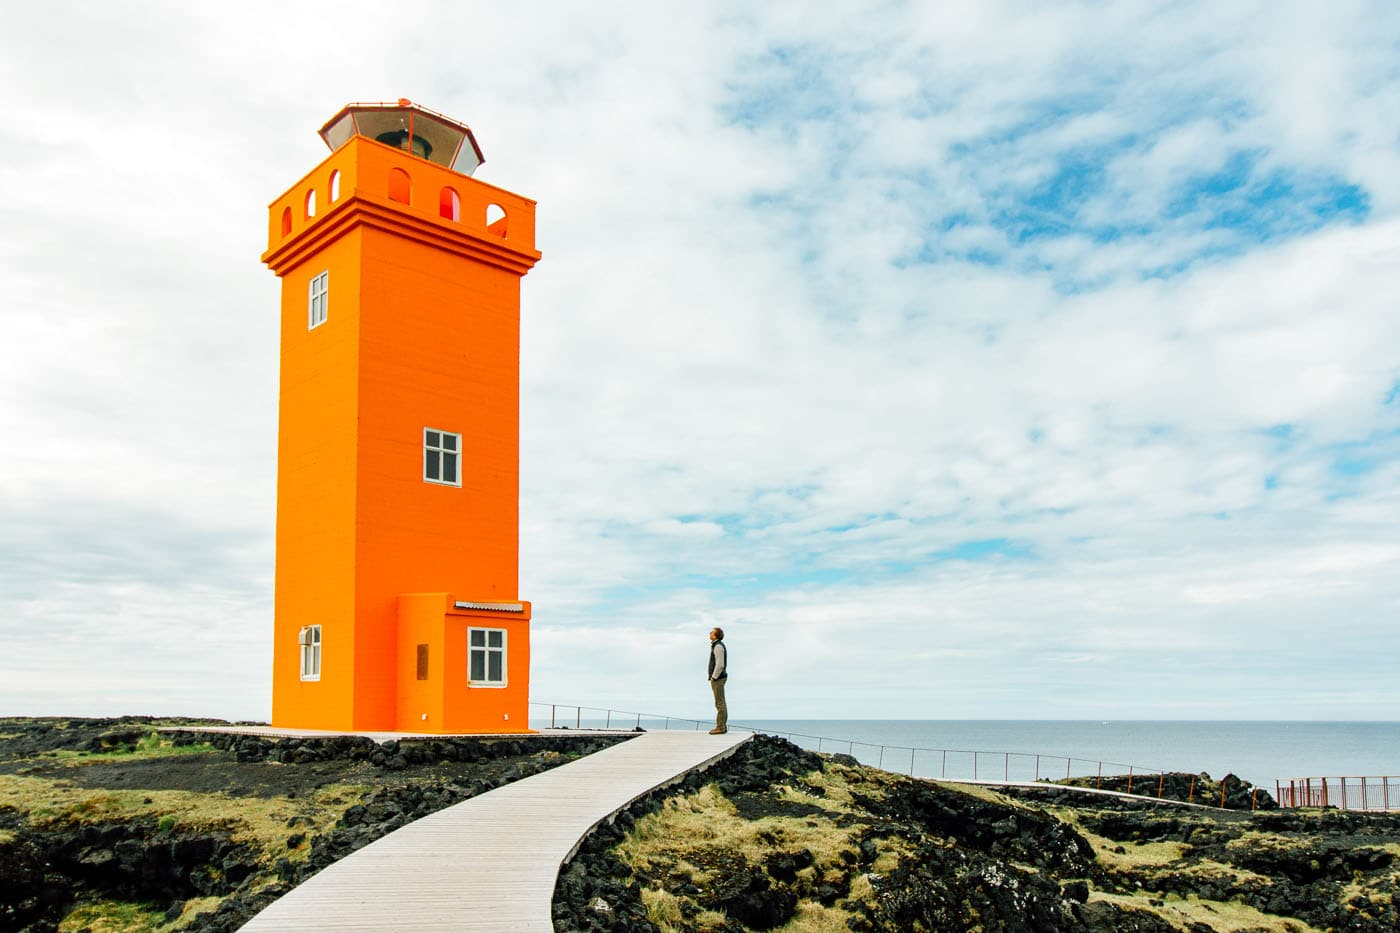 Man looking up at a towering orange lighthouse with blue skies in the background